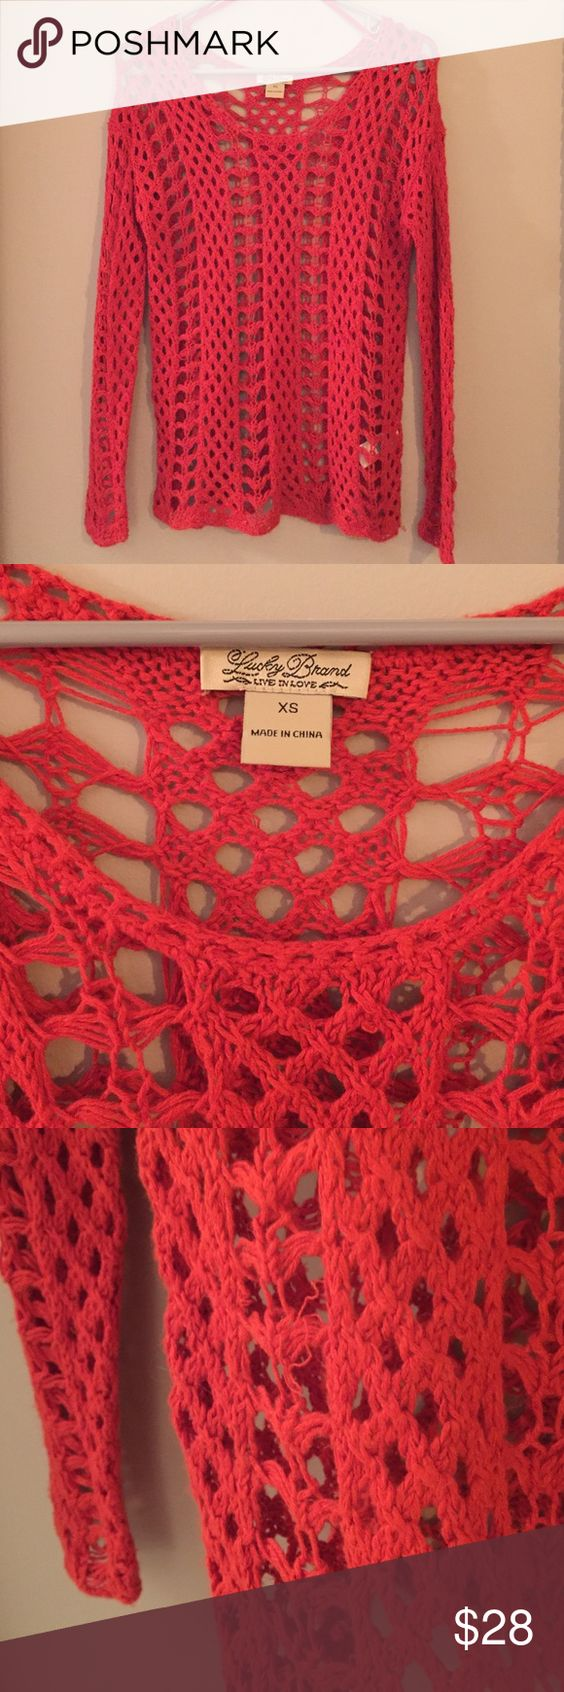 Lucky Brand Sweater Bright red Lucky Brand sweater with netted style. There a few loose threads, 2 of which are pictured. There are a few more on the sweater. I'm happy to post more pics if needed. Lucky Brand Sweaters